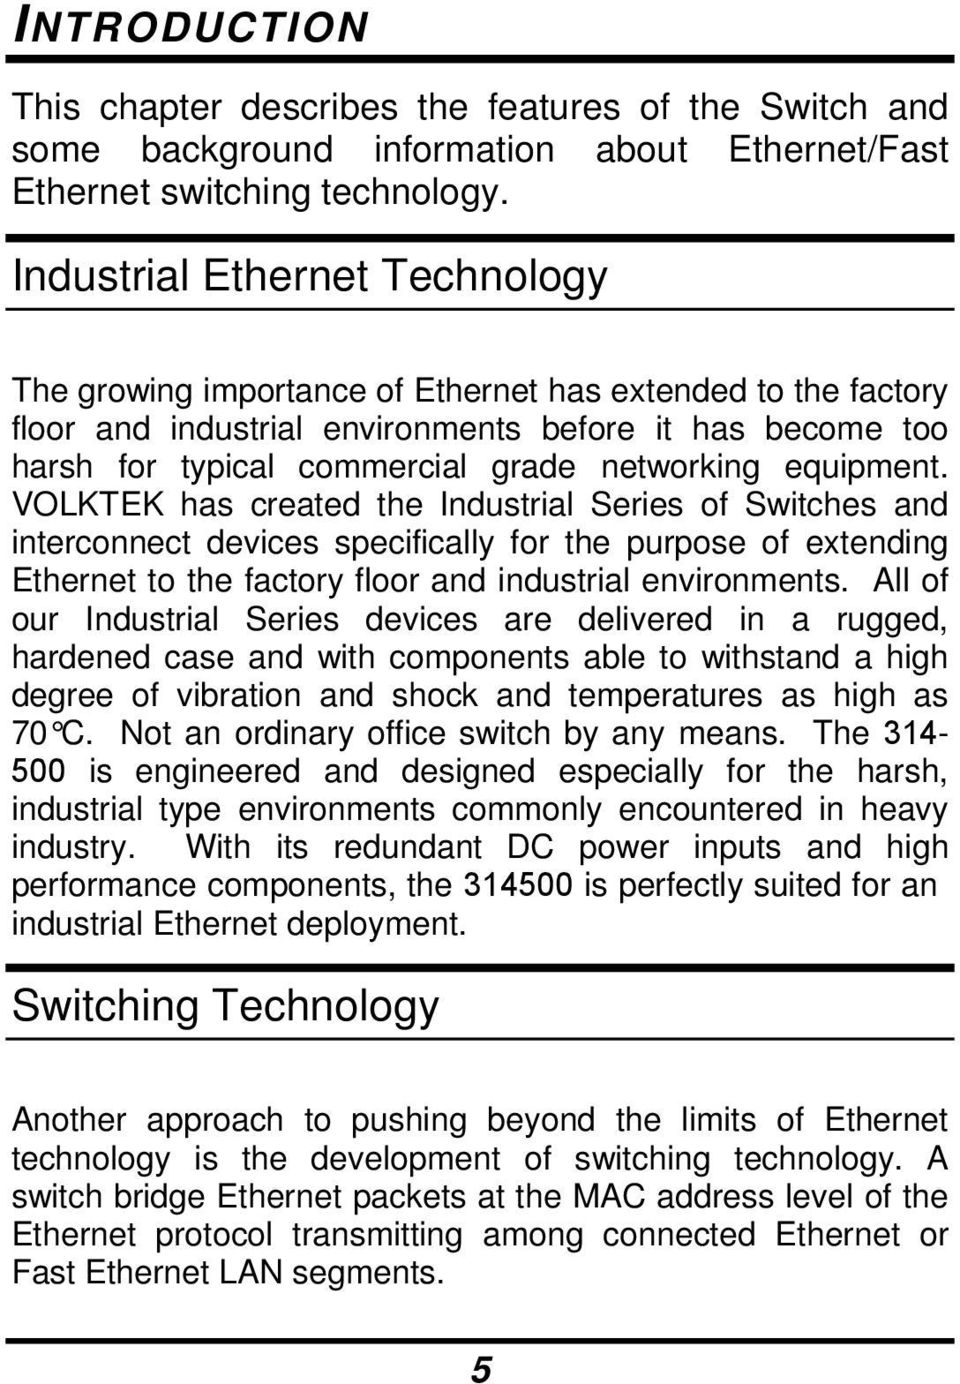 equipment. VOLKTEK has created the Industrial Series of Switches and interconnect devices specifically for the purpose of extending Ethernet to the factory floor and industrial environments.